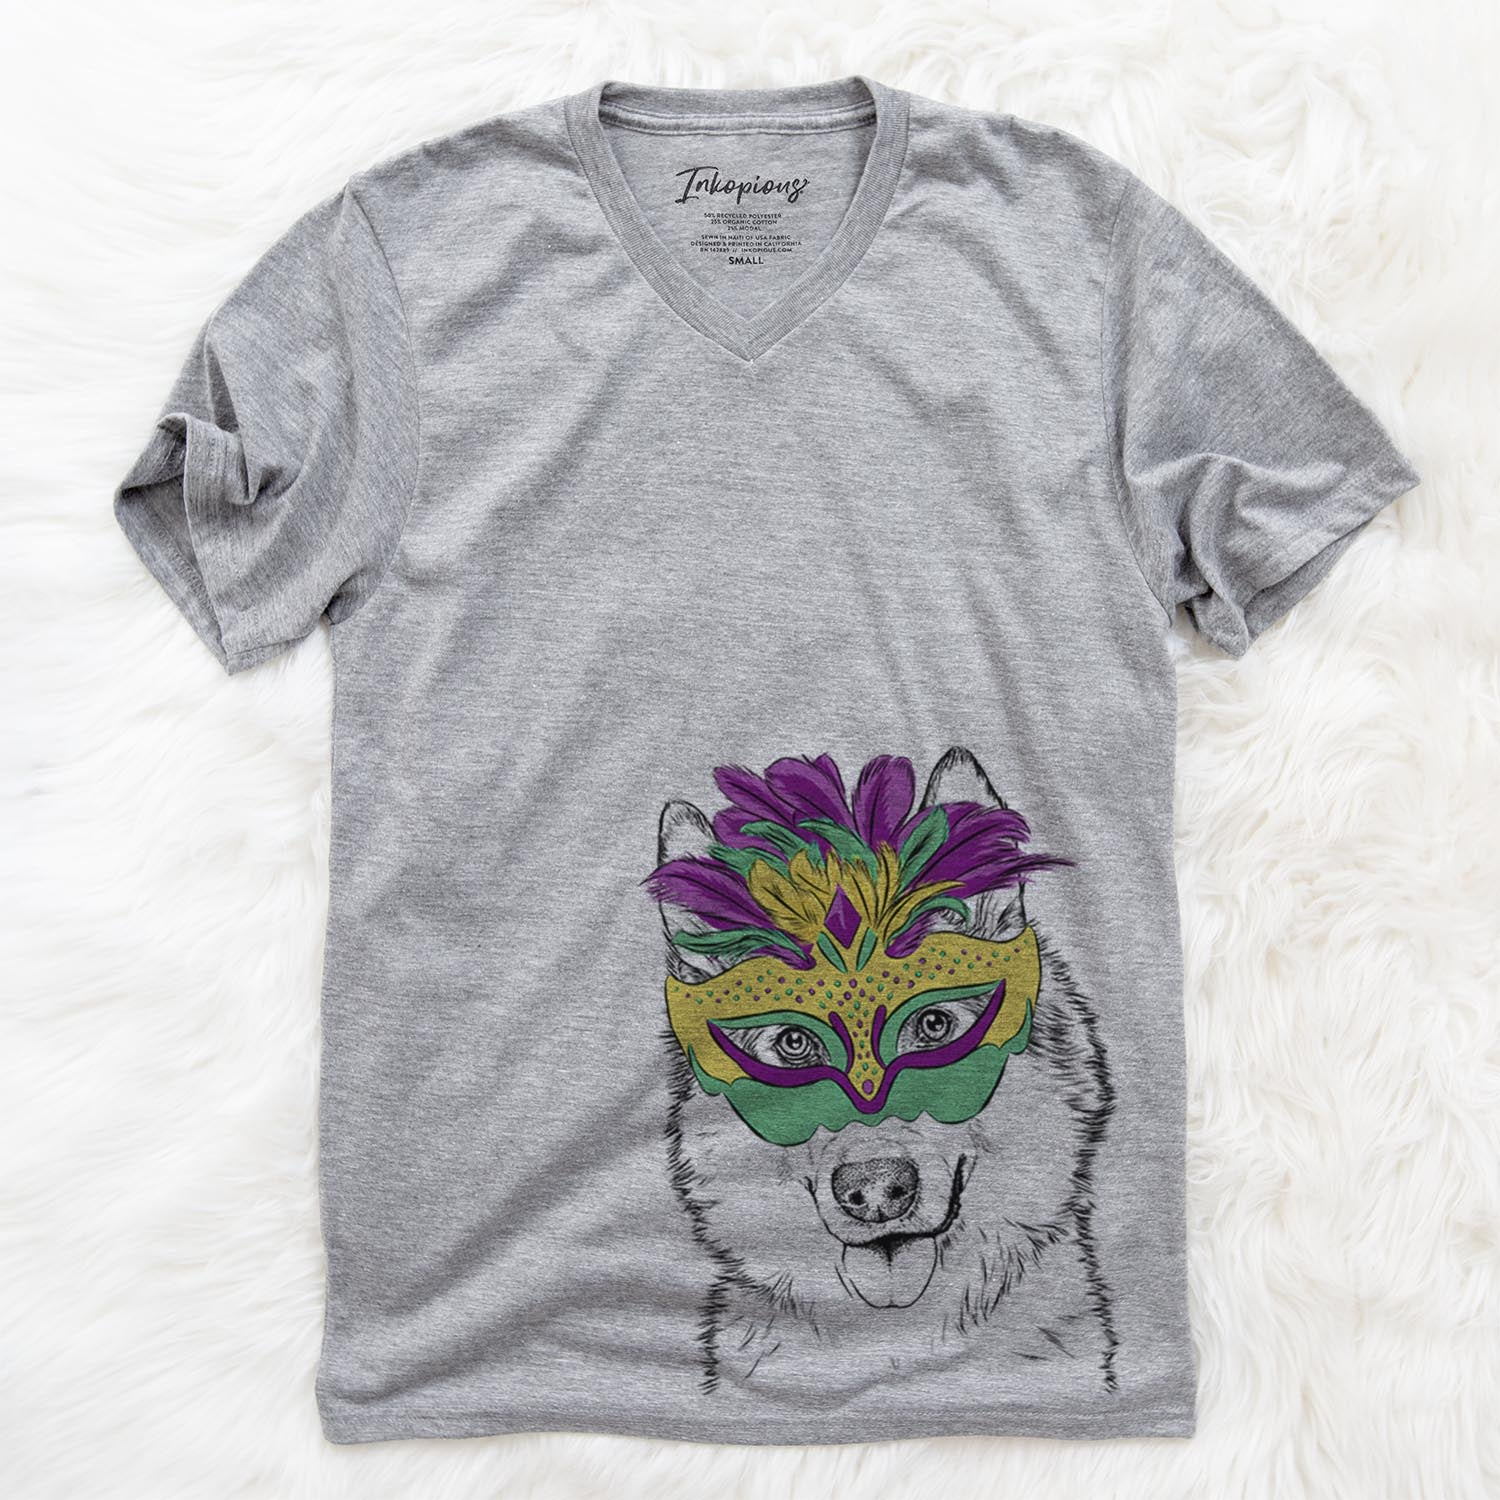 Roshi the Mixed Breed  - Mardi Gras Collection